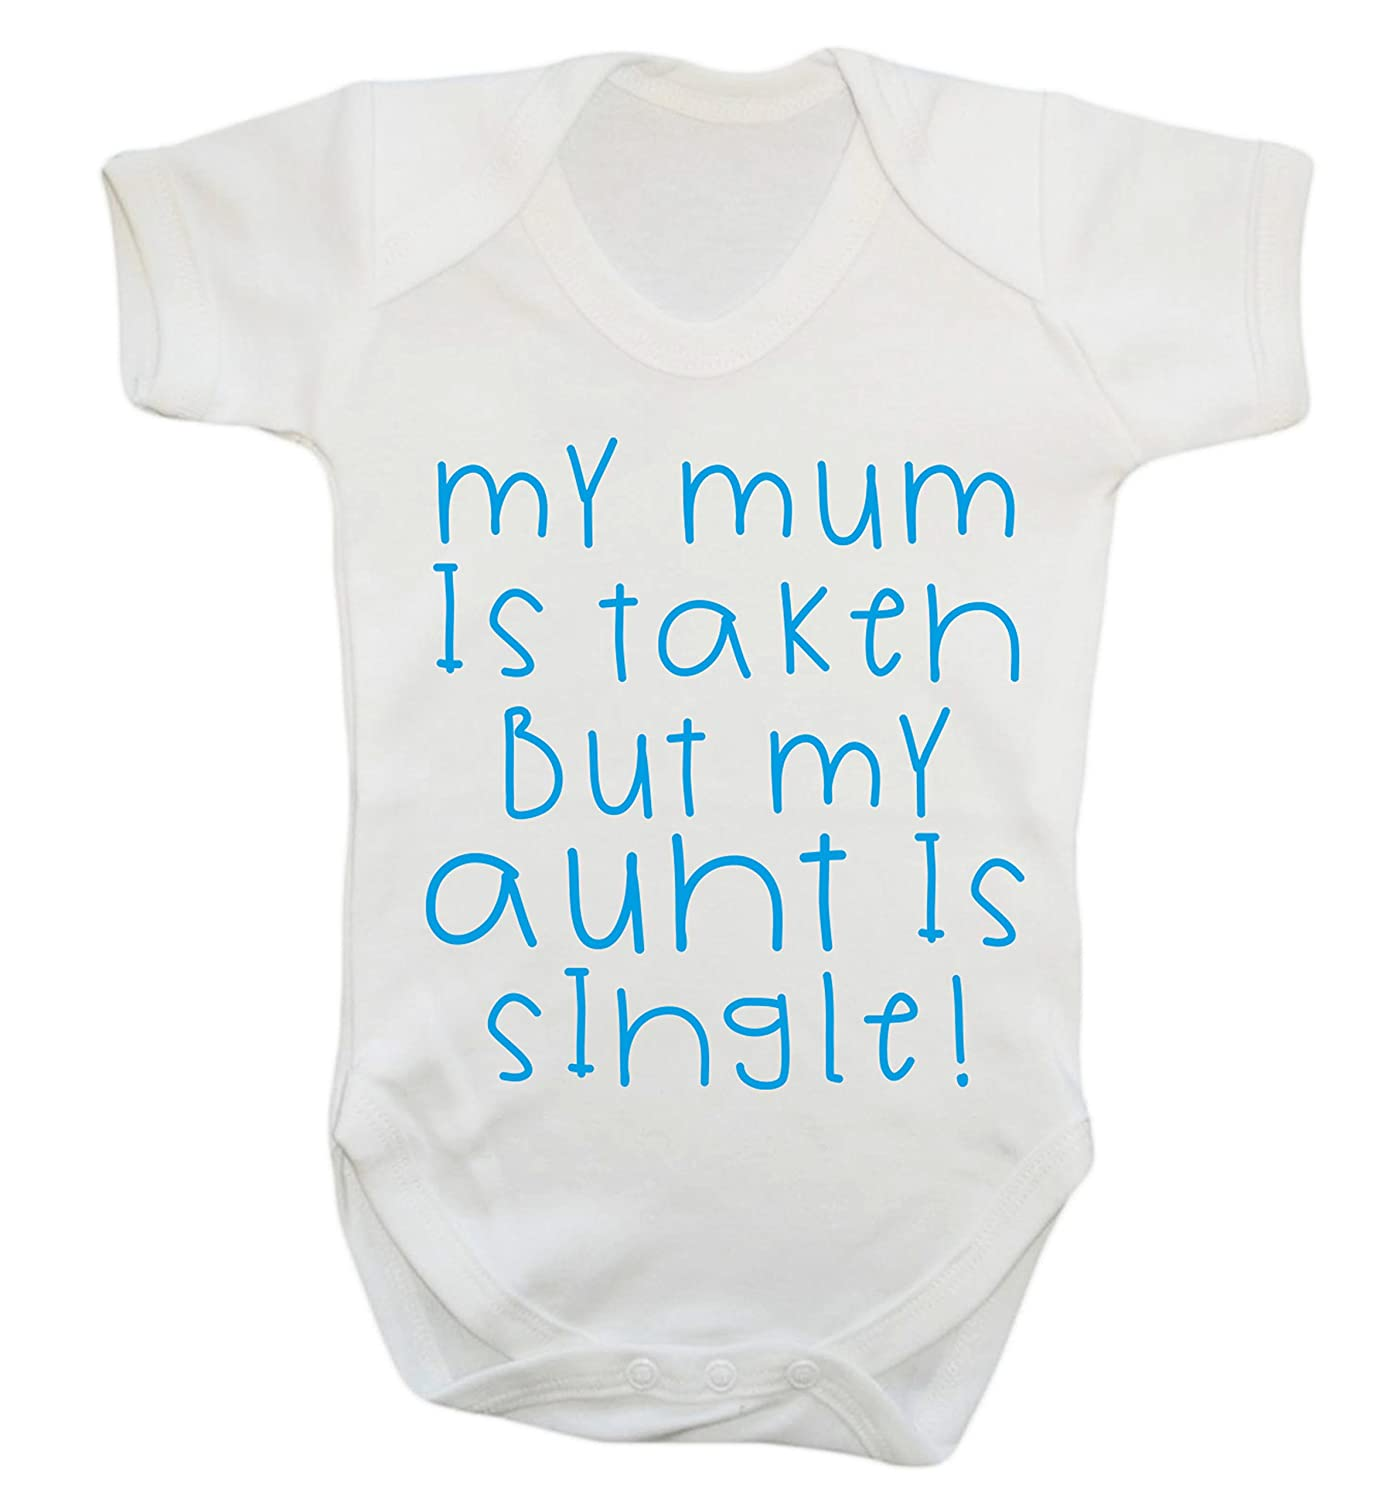 Amazing images of personalised baby clothes cutest baby clothing my mum is taken but my aunt is single baby vest bodysuit babygrow negle Image collections